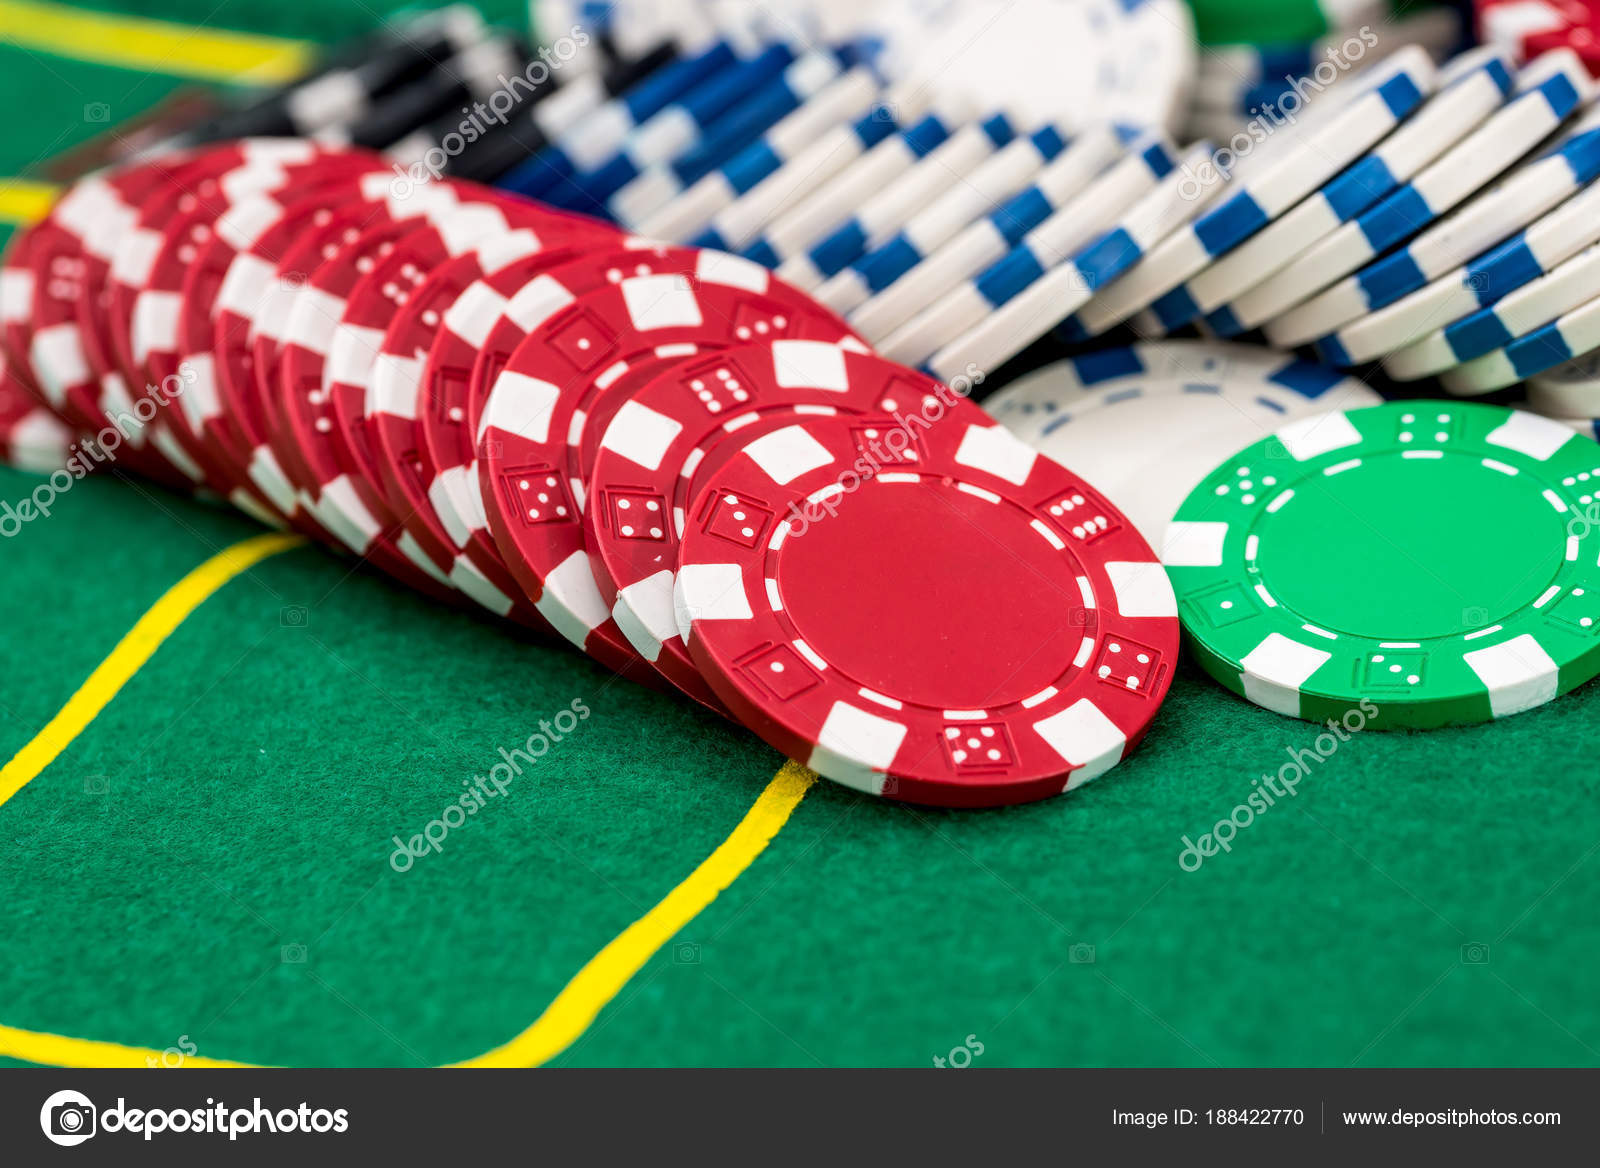 Different poker chips on table at casino u2014 Photo by alfexe & Different Poker Chips Table Casino u2014 Stock Photo © alfexe #188422770